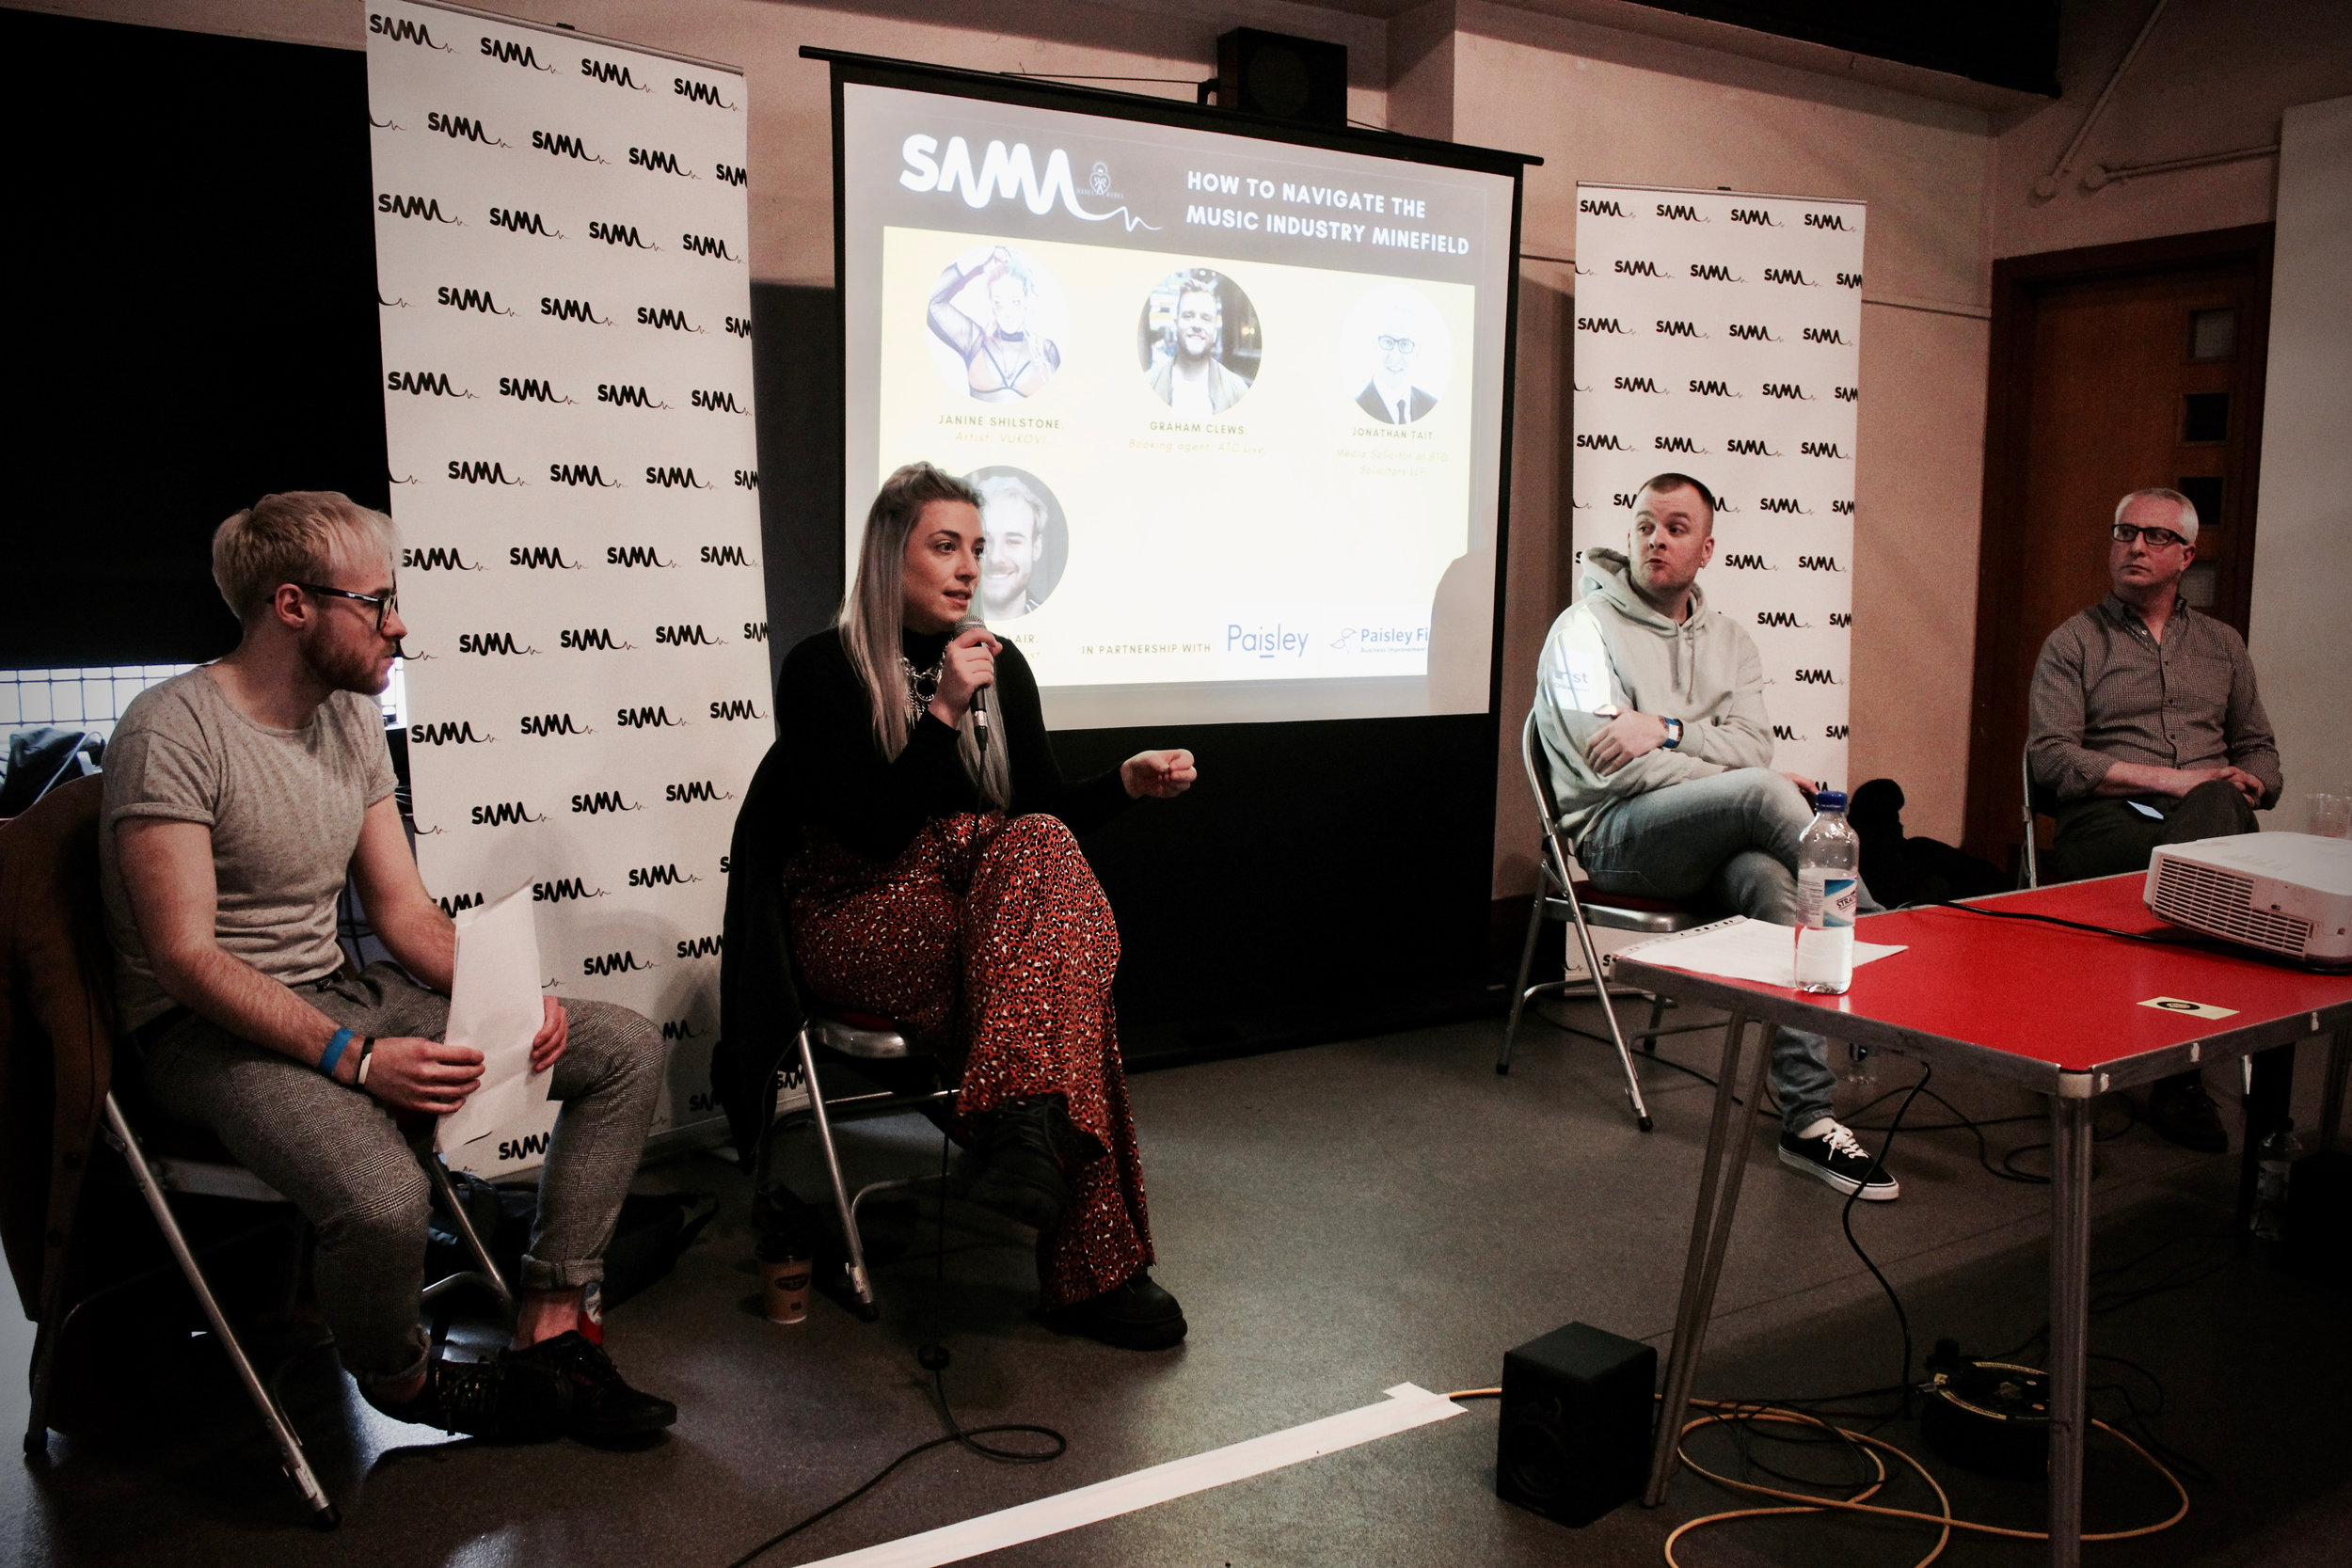 How To Navigate The Music Industry Minefield panel.